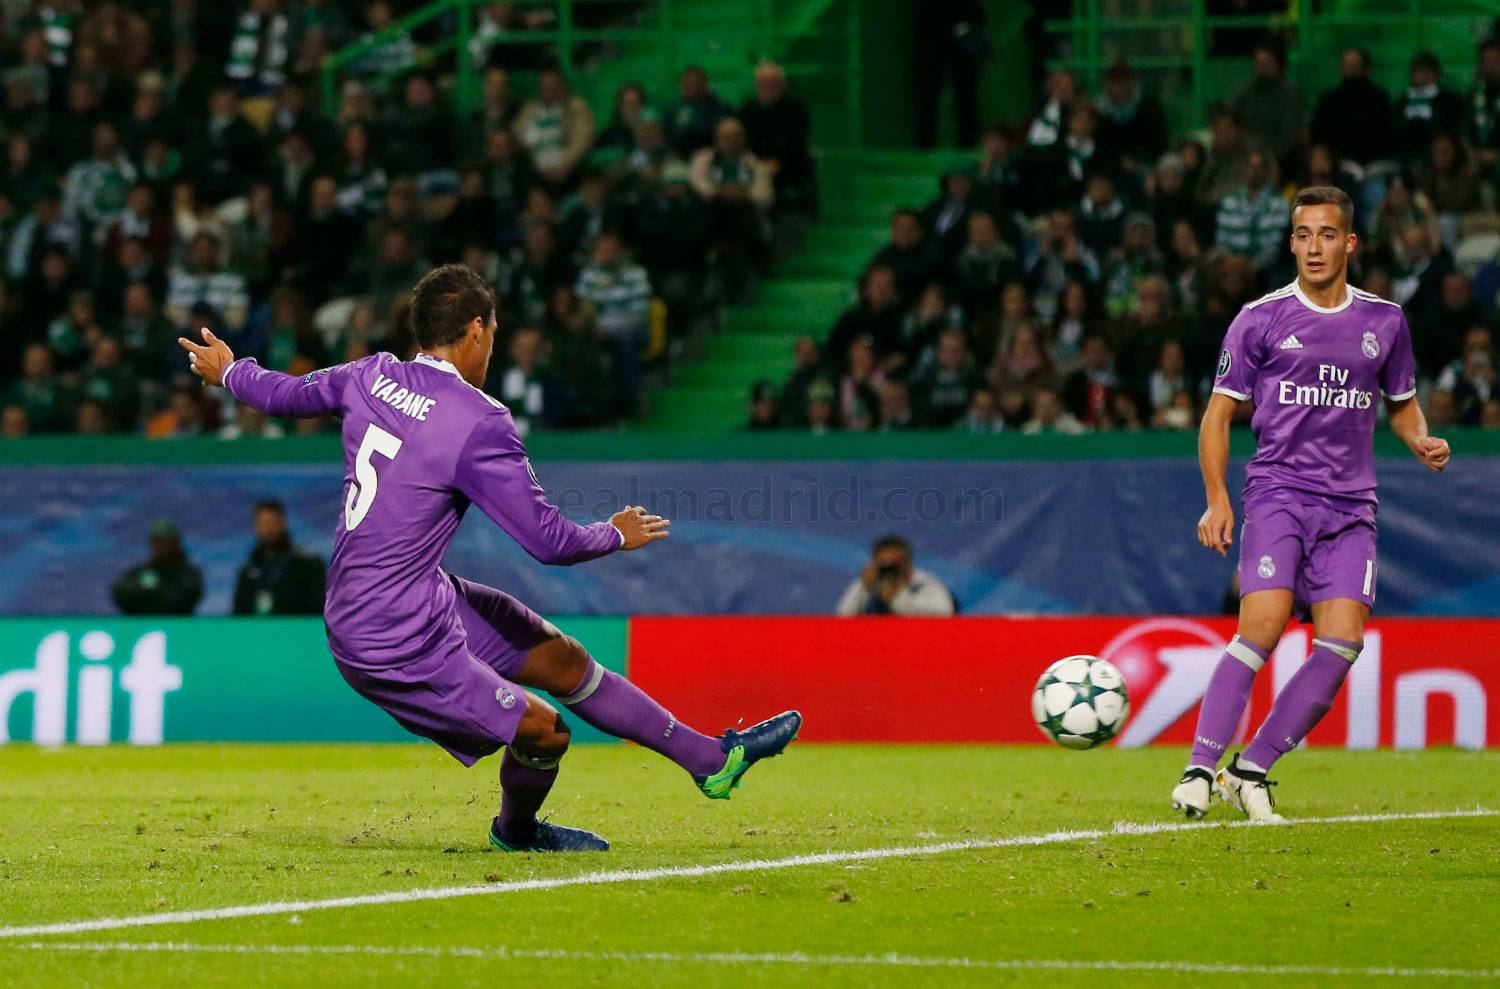 Real Madrid - Sporting de Portugal - Real Madrid - 22-11-2016